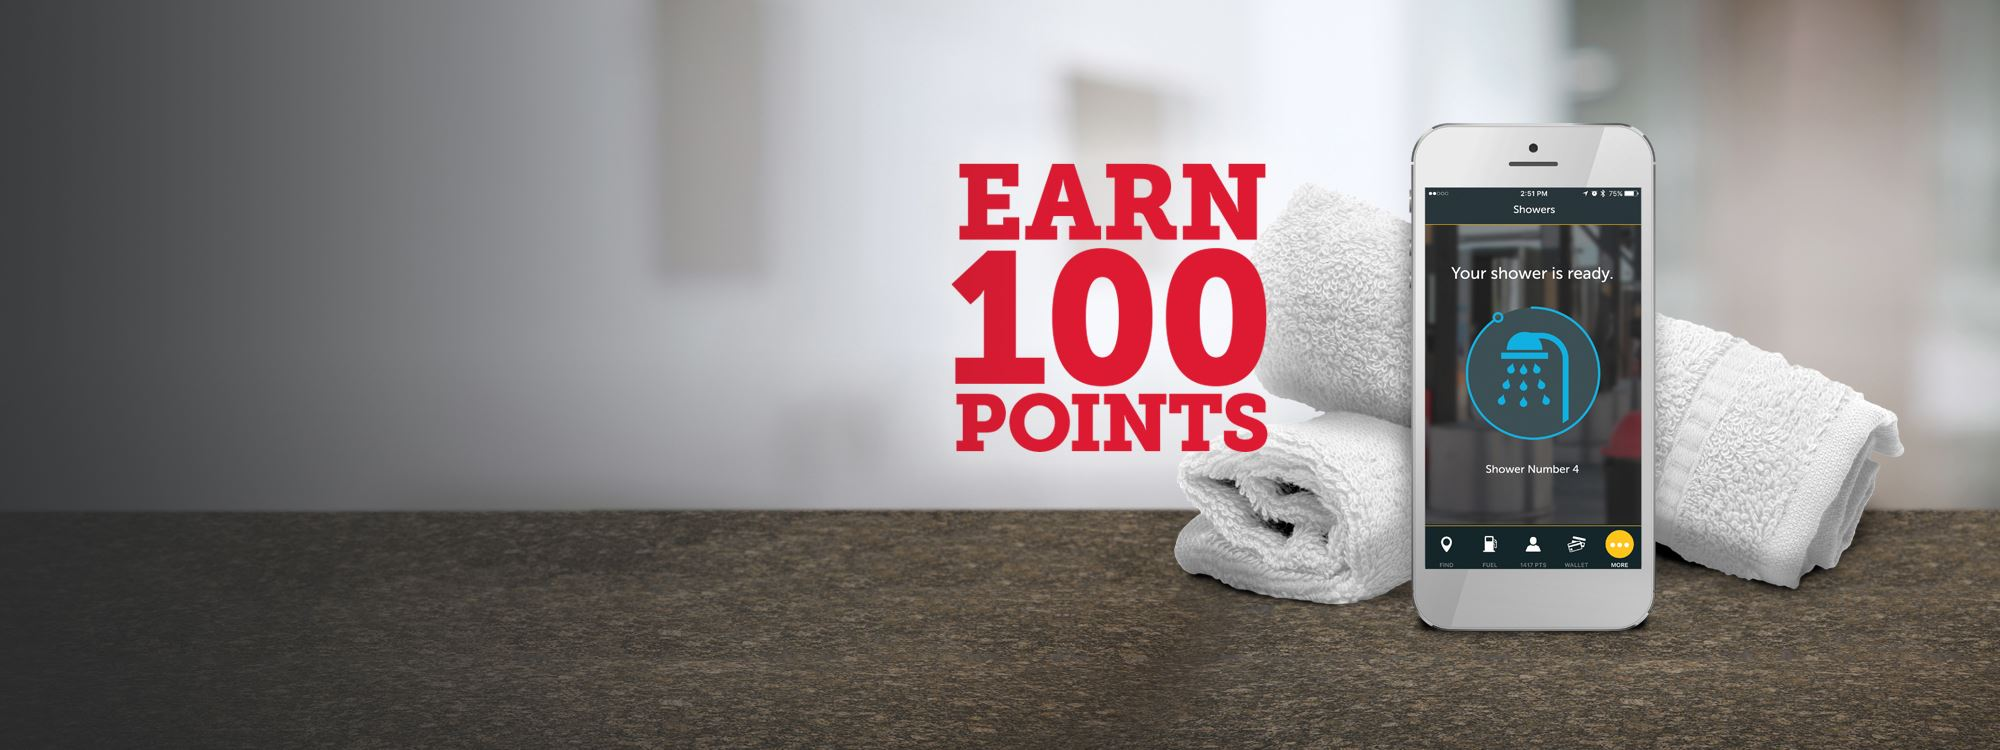 myPilot App Earn 100 points with shower reservation